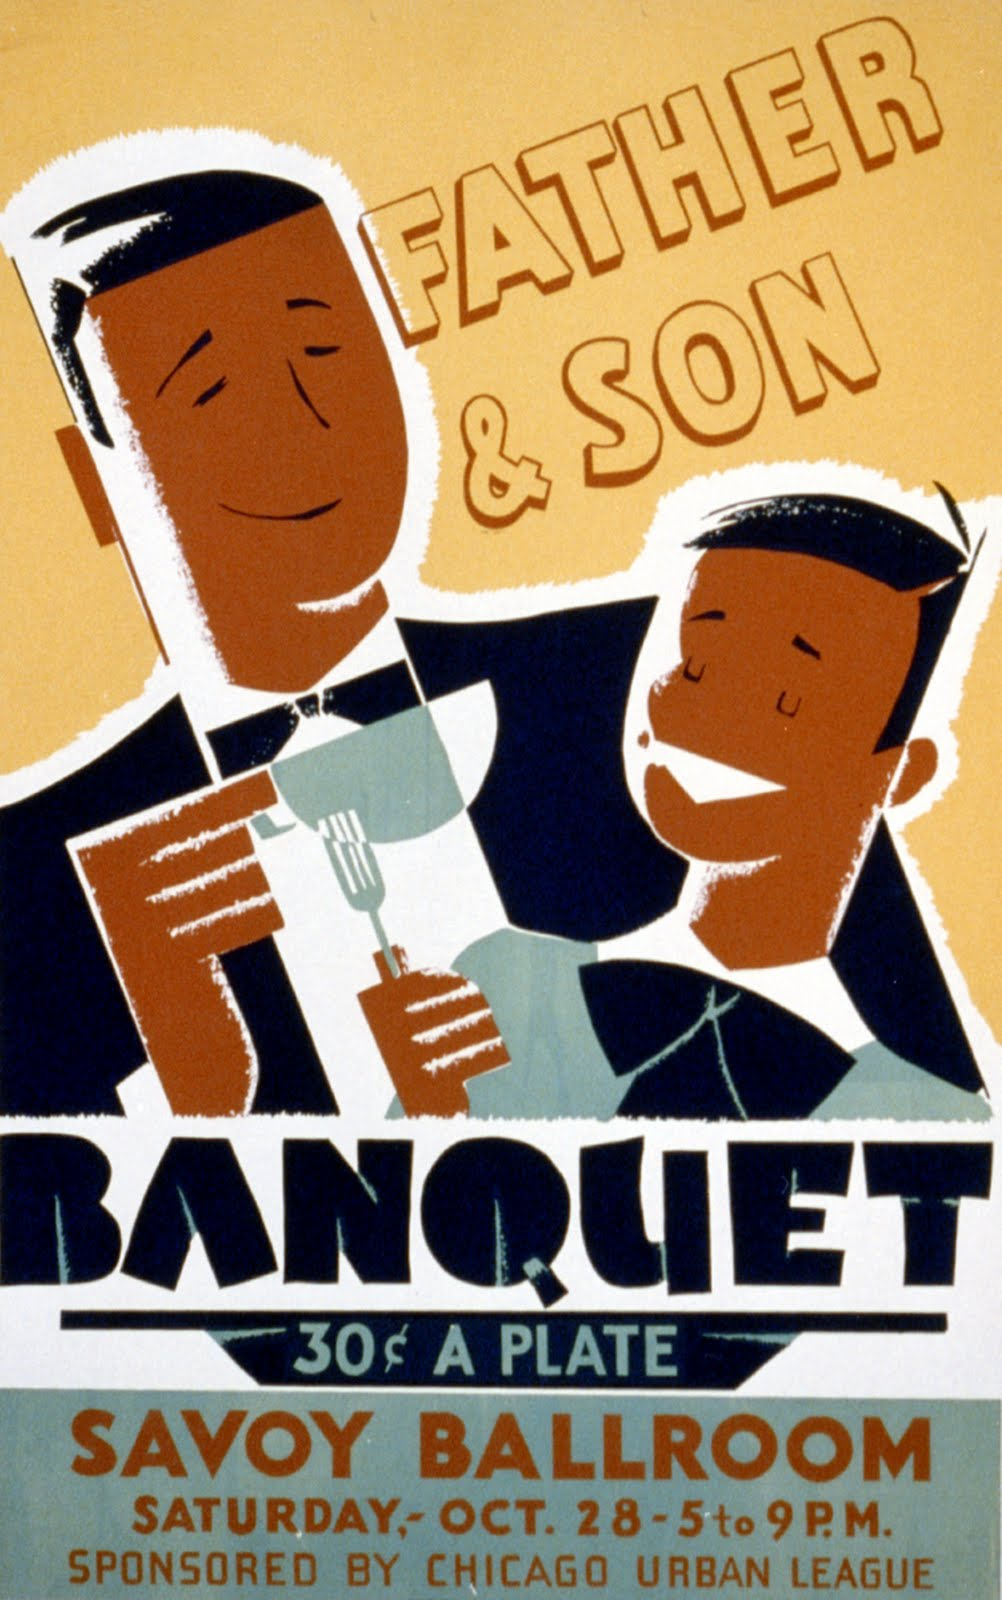 African American Father & Son Banquet Poster Public Domain Clip Art.